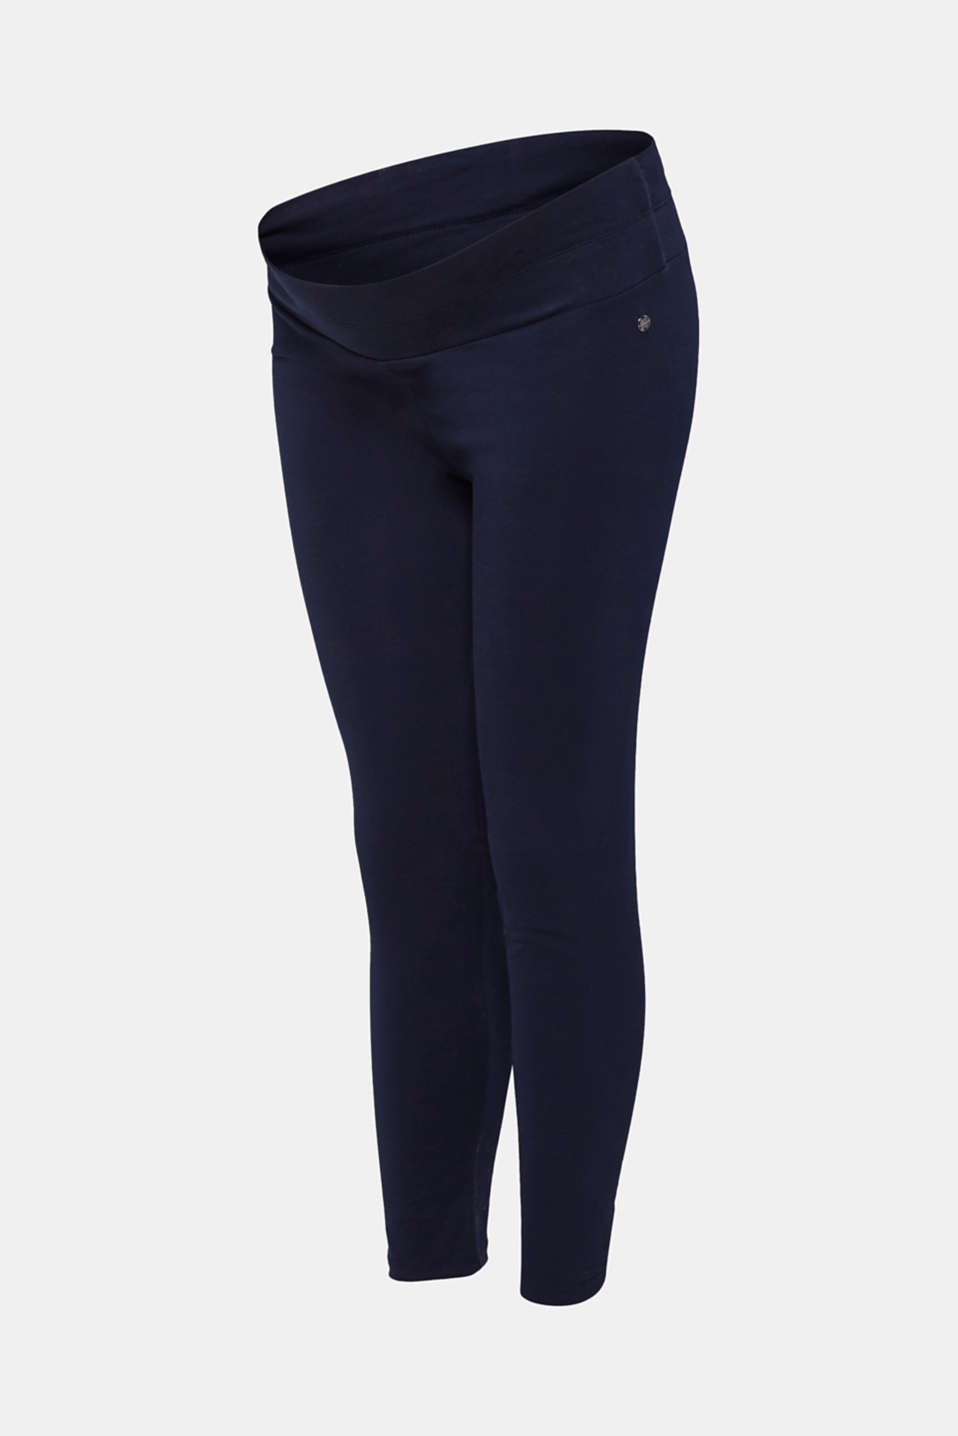 Leggings with an under-bump waistband, LCNIGHT BLUE, detail image number 3